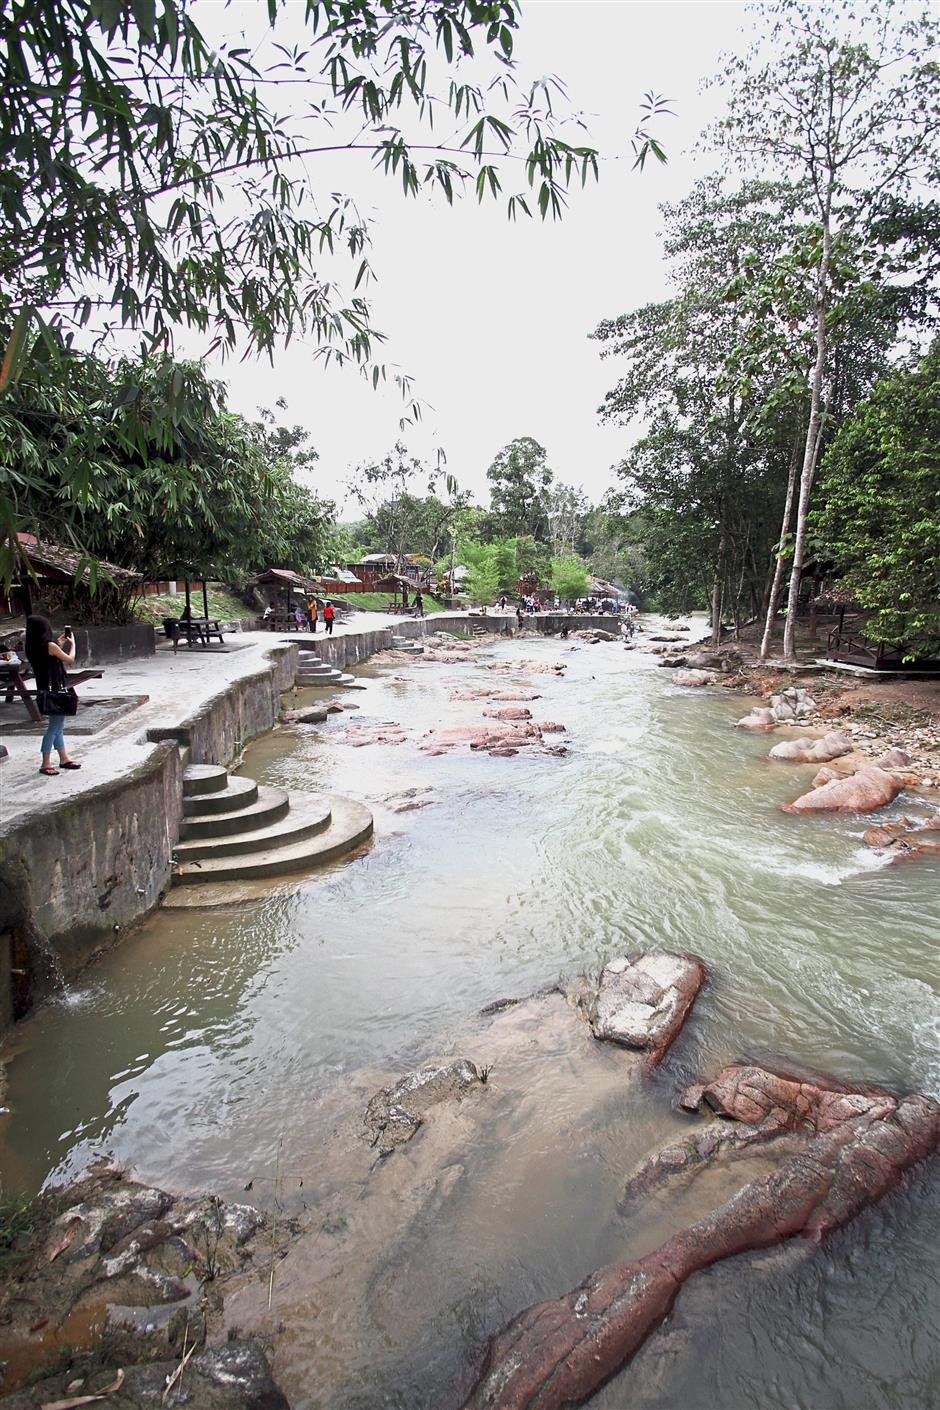 The scenic river that flows through the Lubuk Timah Hotsprings and Recreational Centre in Simpang Pulai.